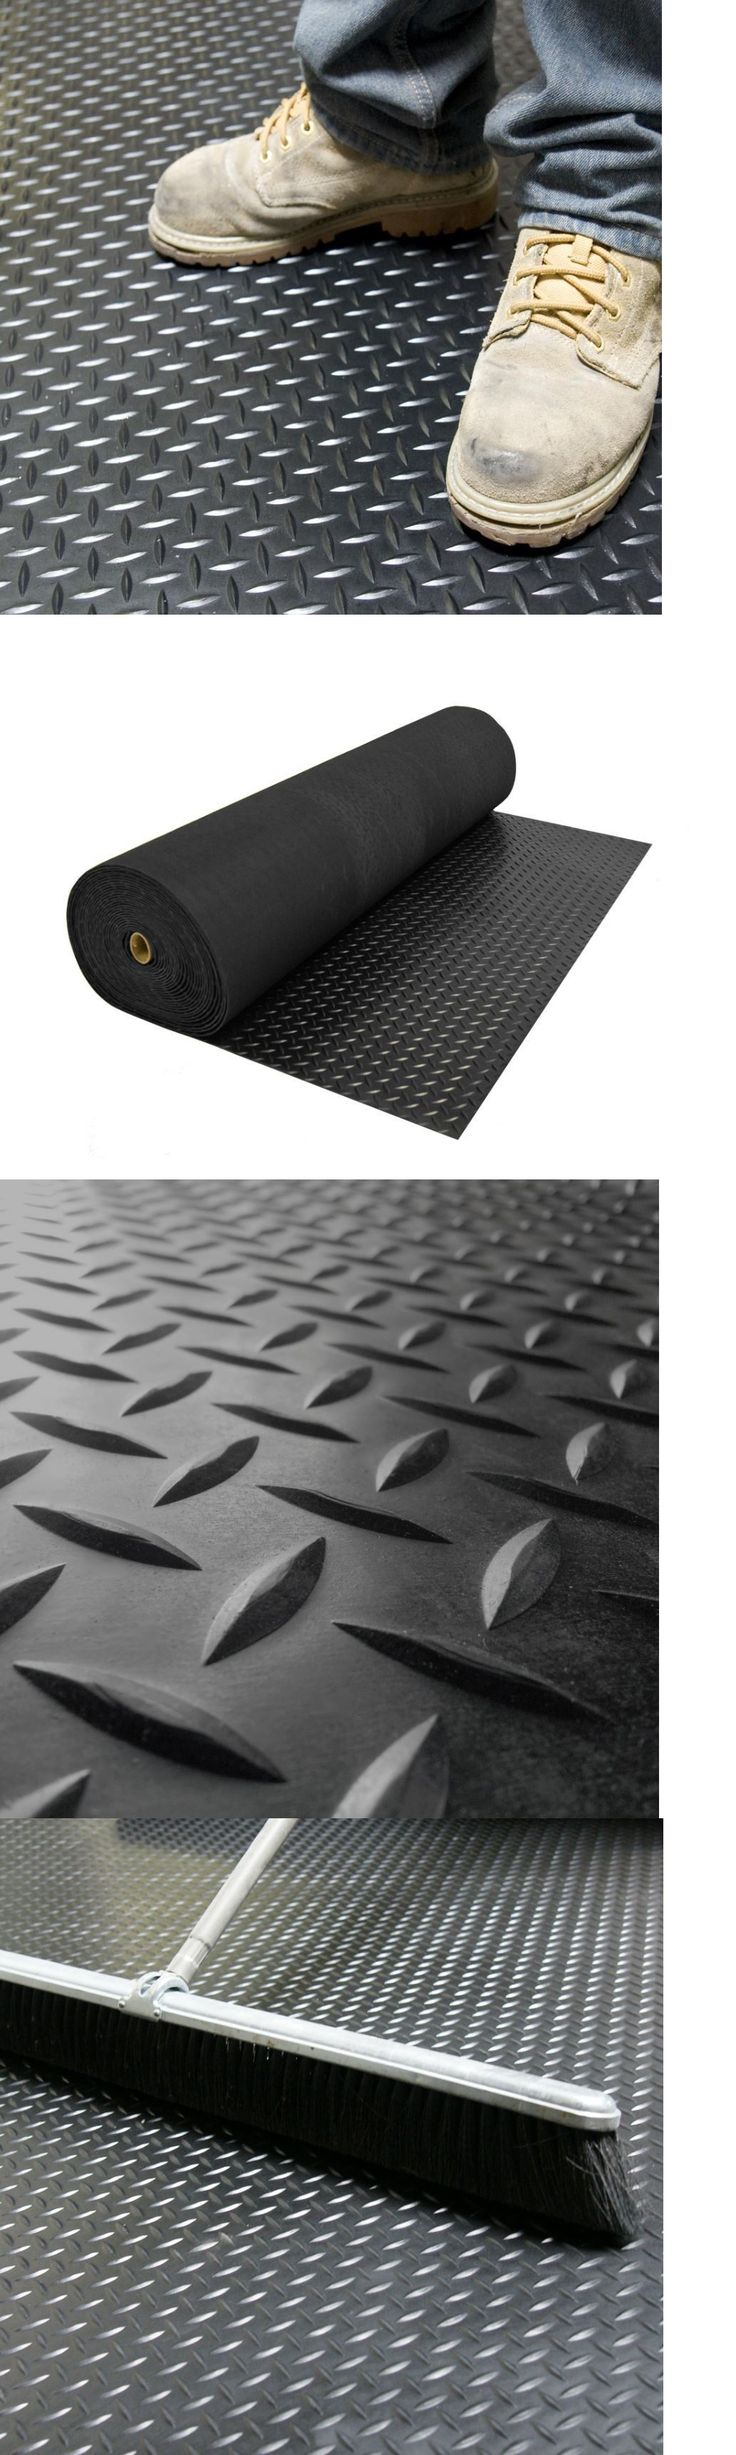 Kitchen Rubber Floor Mats 17 Best Ideas About Rubber Flooring On Pinterest Rubber Tiles